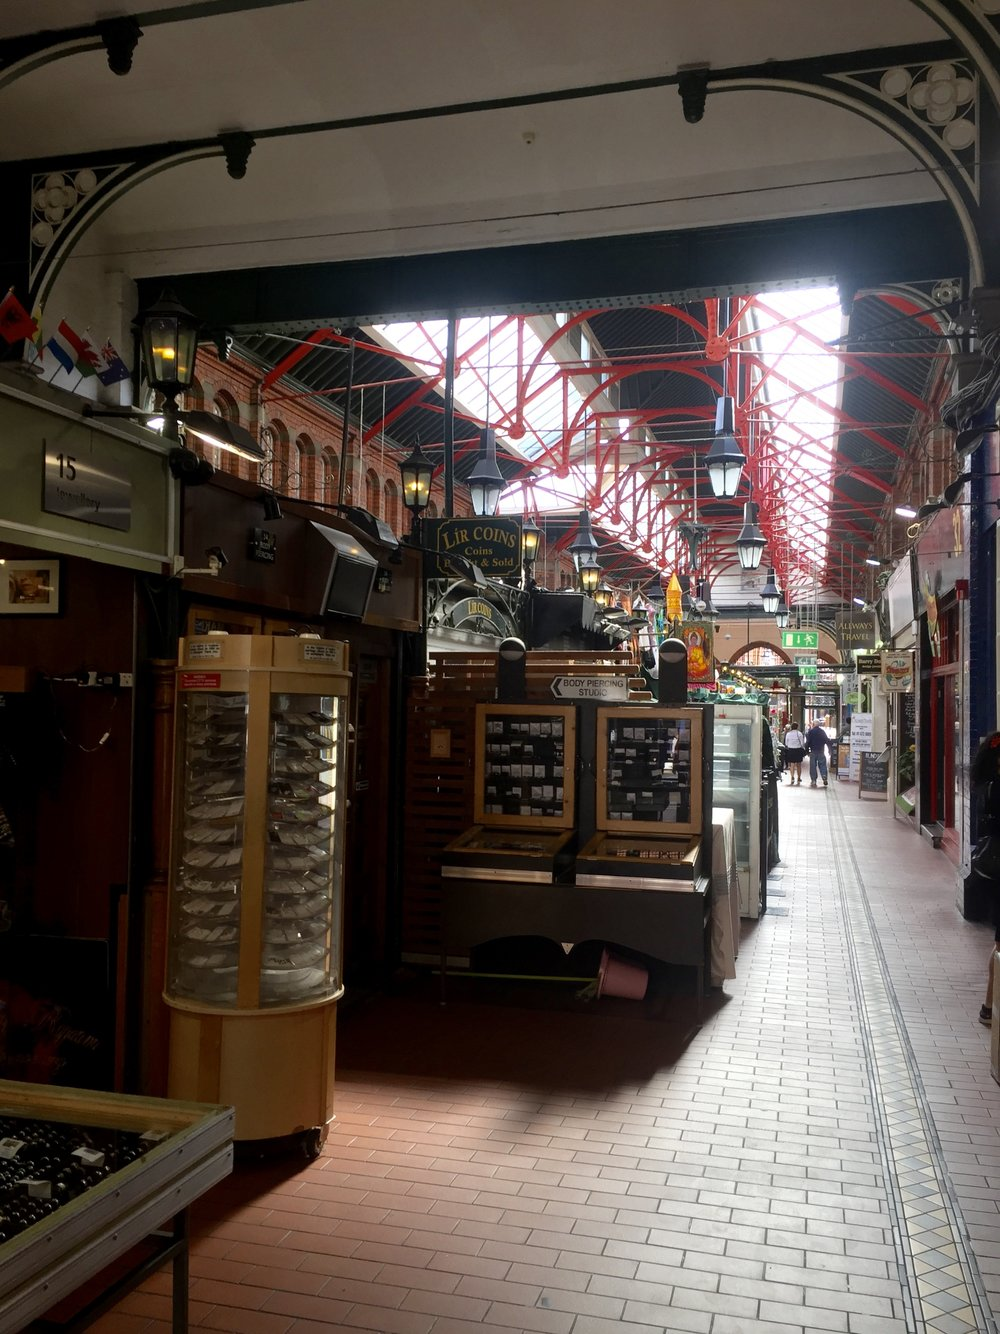 George's Street Arcade opened in 1881 as the South City Markets, and it still showcases a cool collection of eclectic shops!